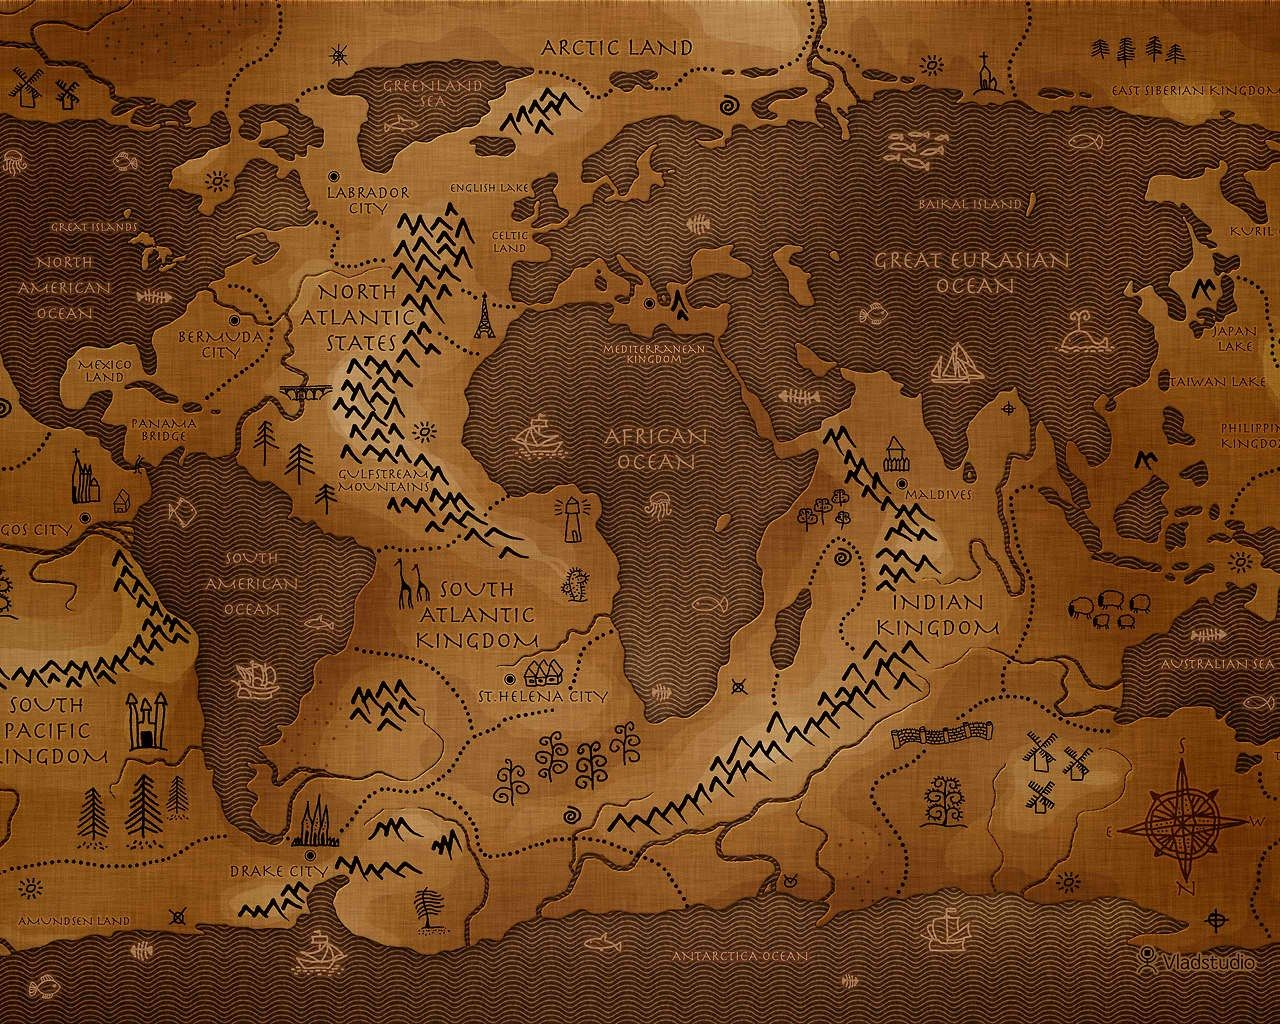 1581566 world map category backgrounds high resolution world map 1581566 world map category backgrounds high resolution world map wallpaper gumiabroncs Image collections